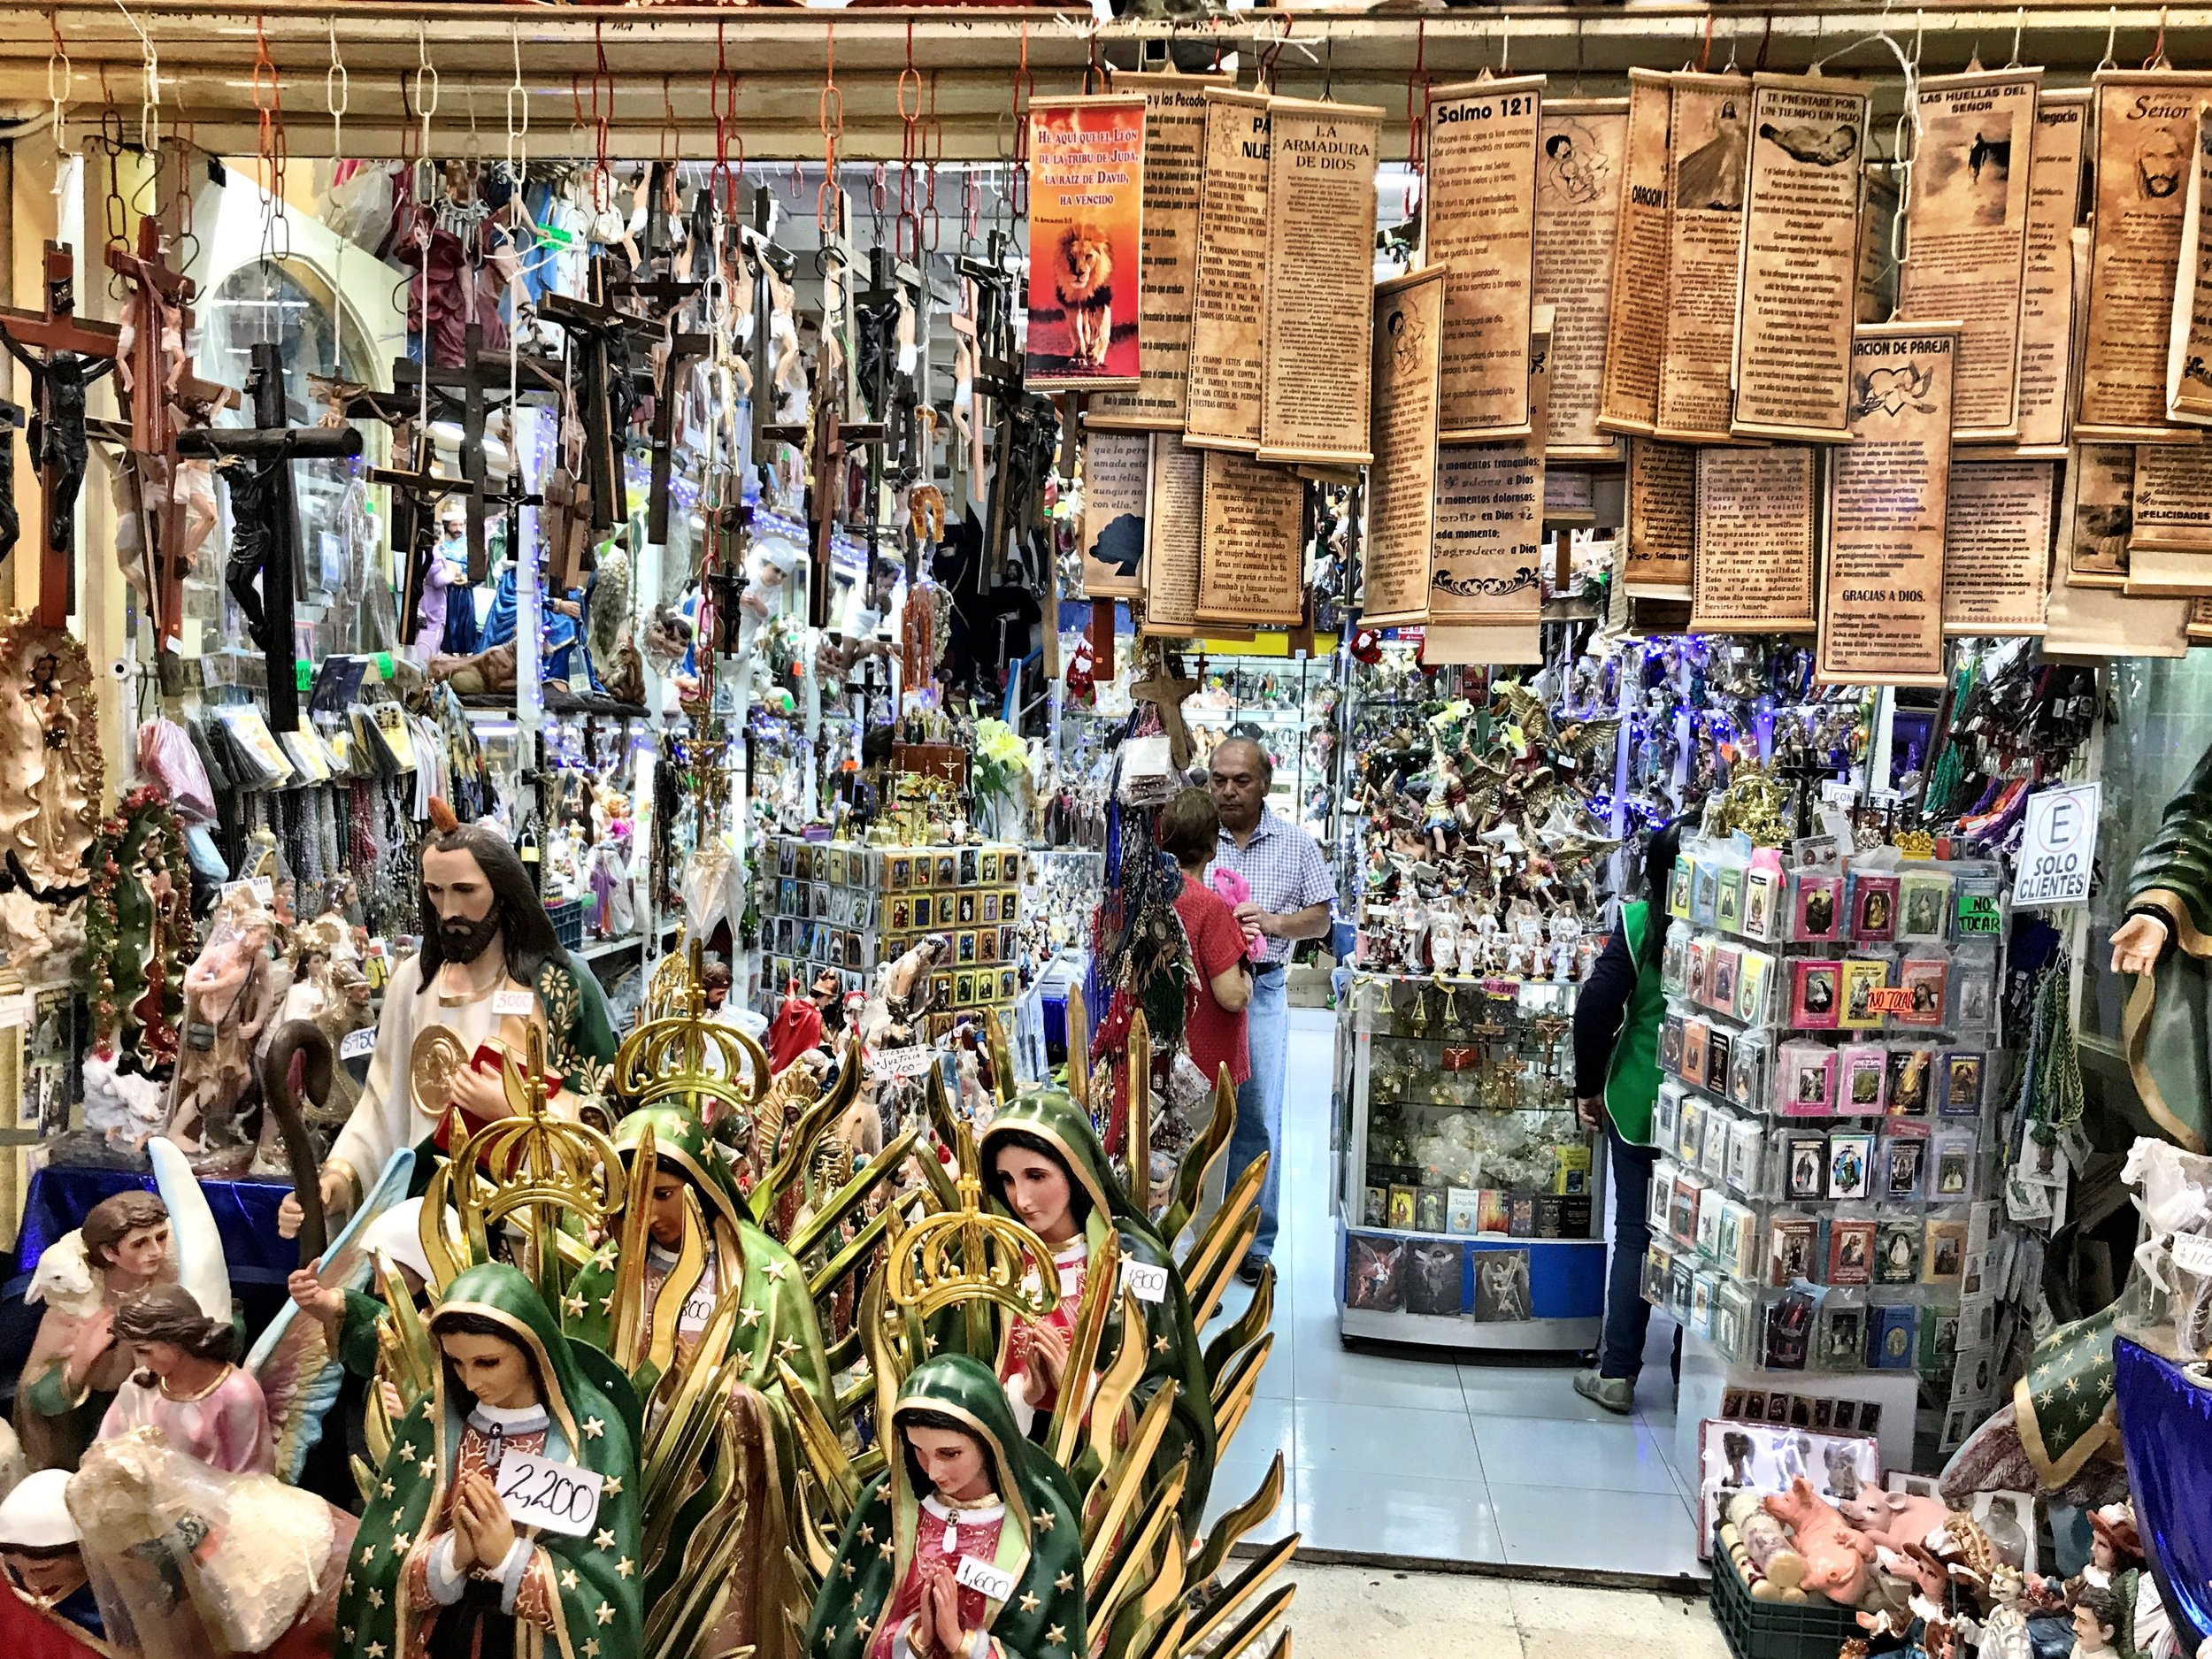 Head to the back left corner of the Mercado Sonora to find the witch's market